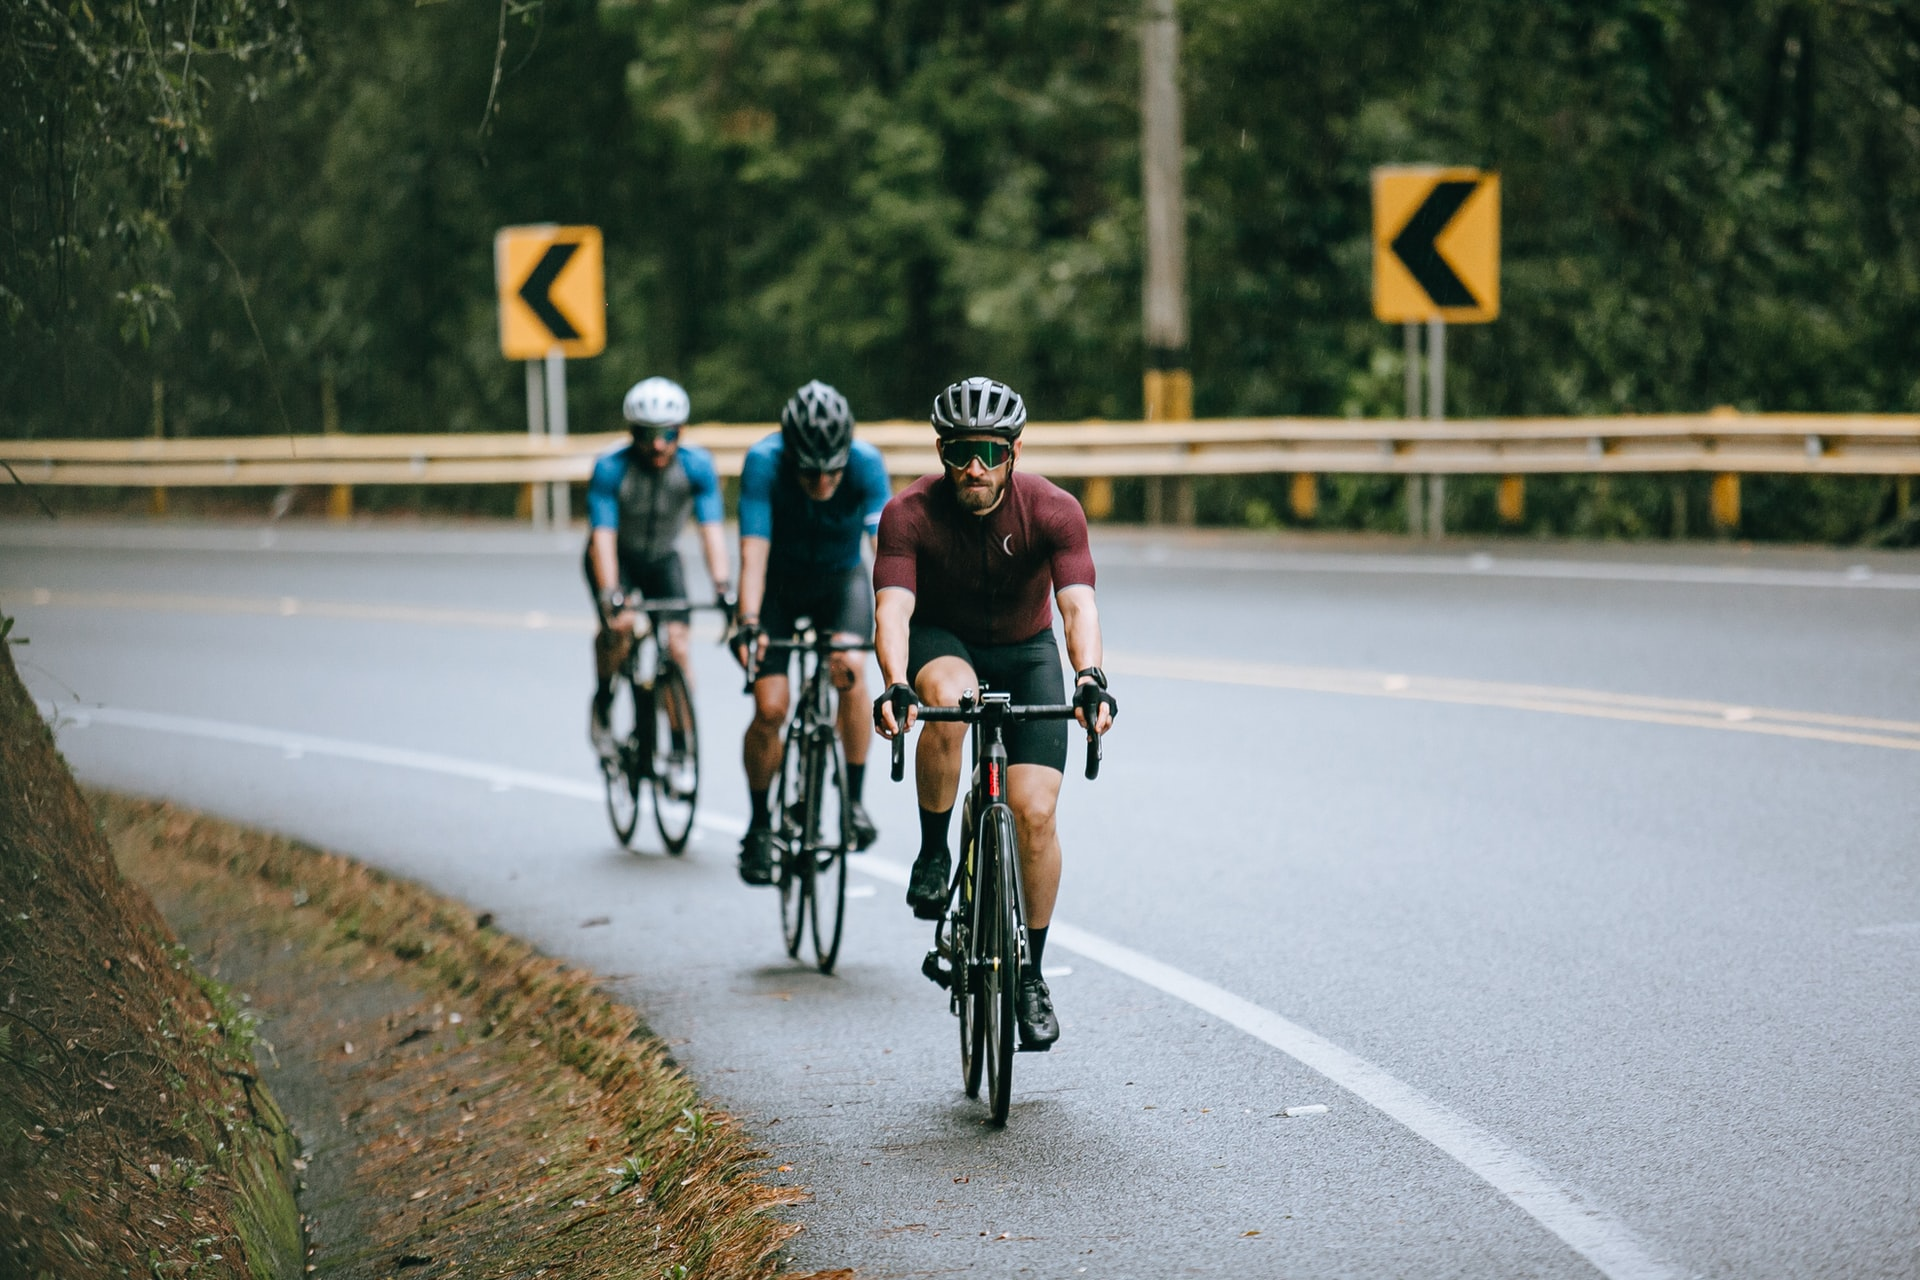 Men Riding Bicycle on the road